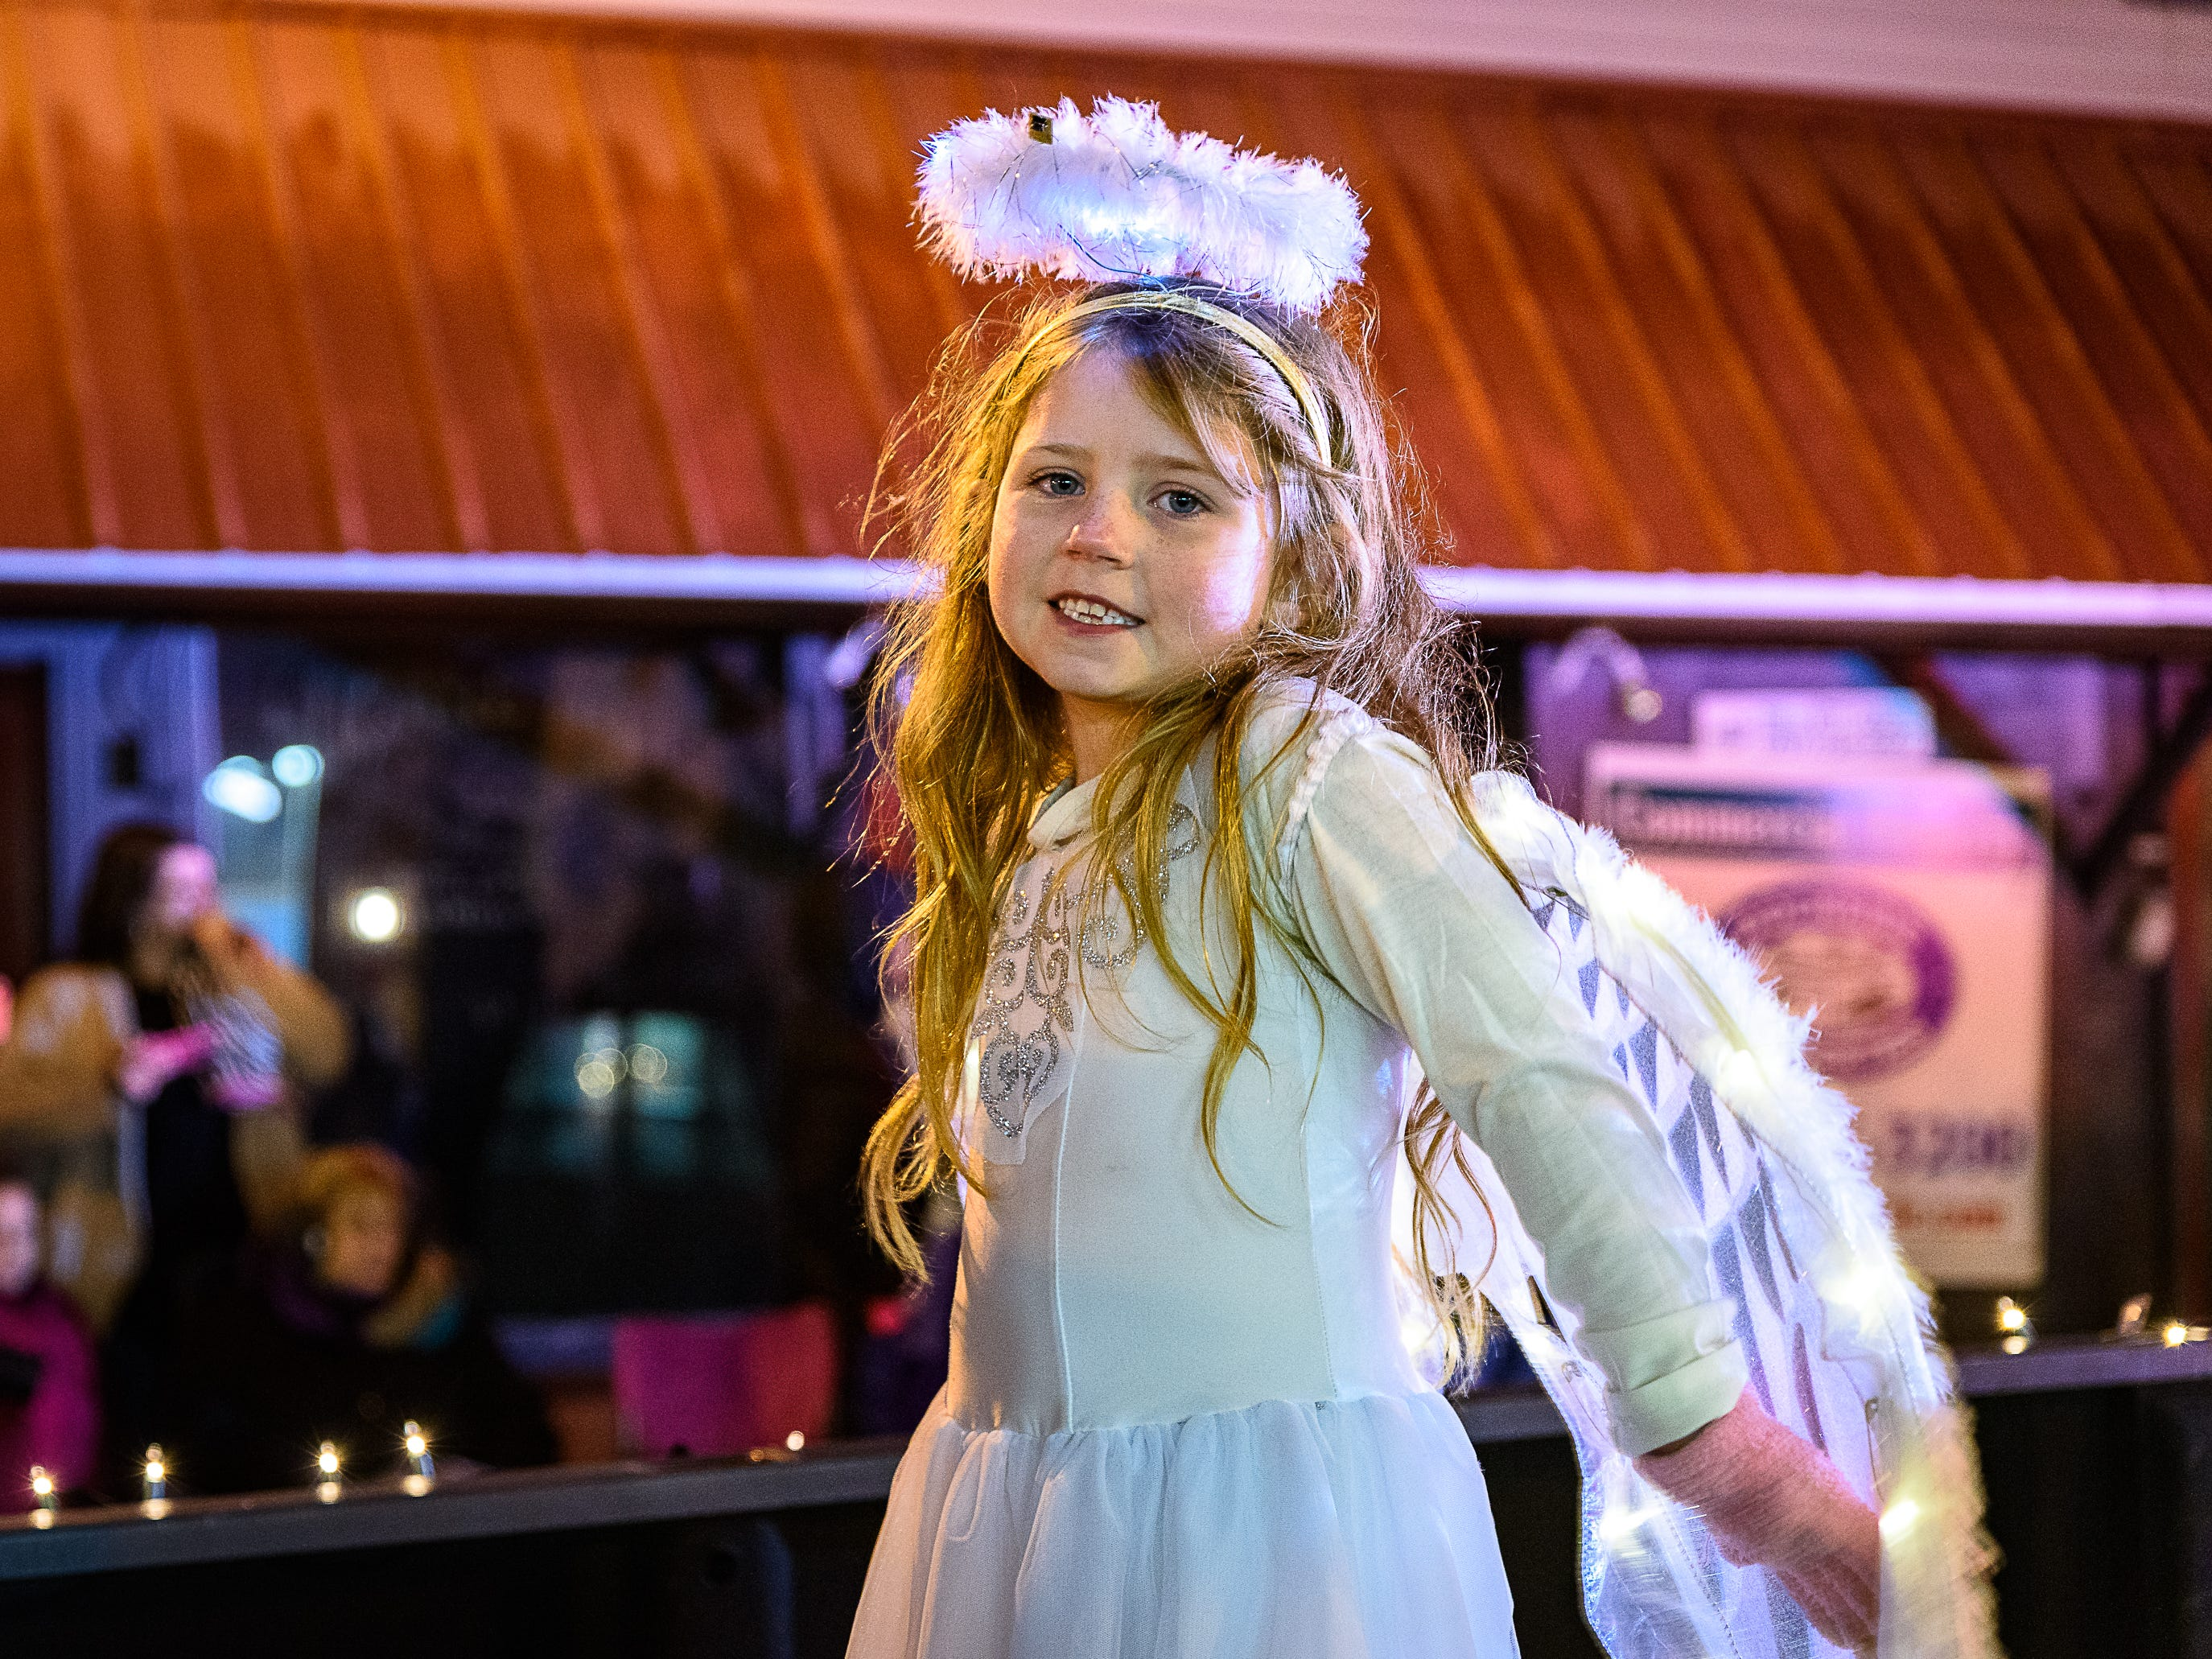 A young angel rides atop a float in the Chincoteague Christmas parade.